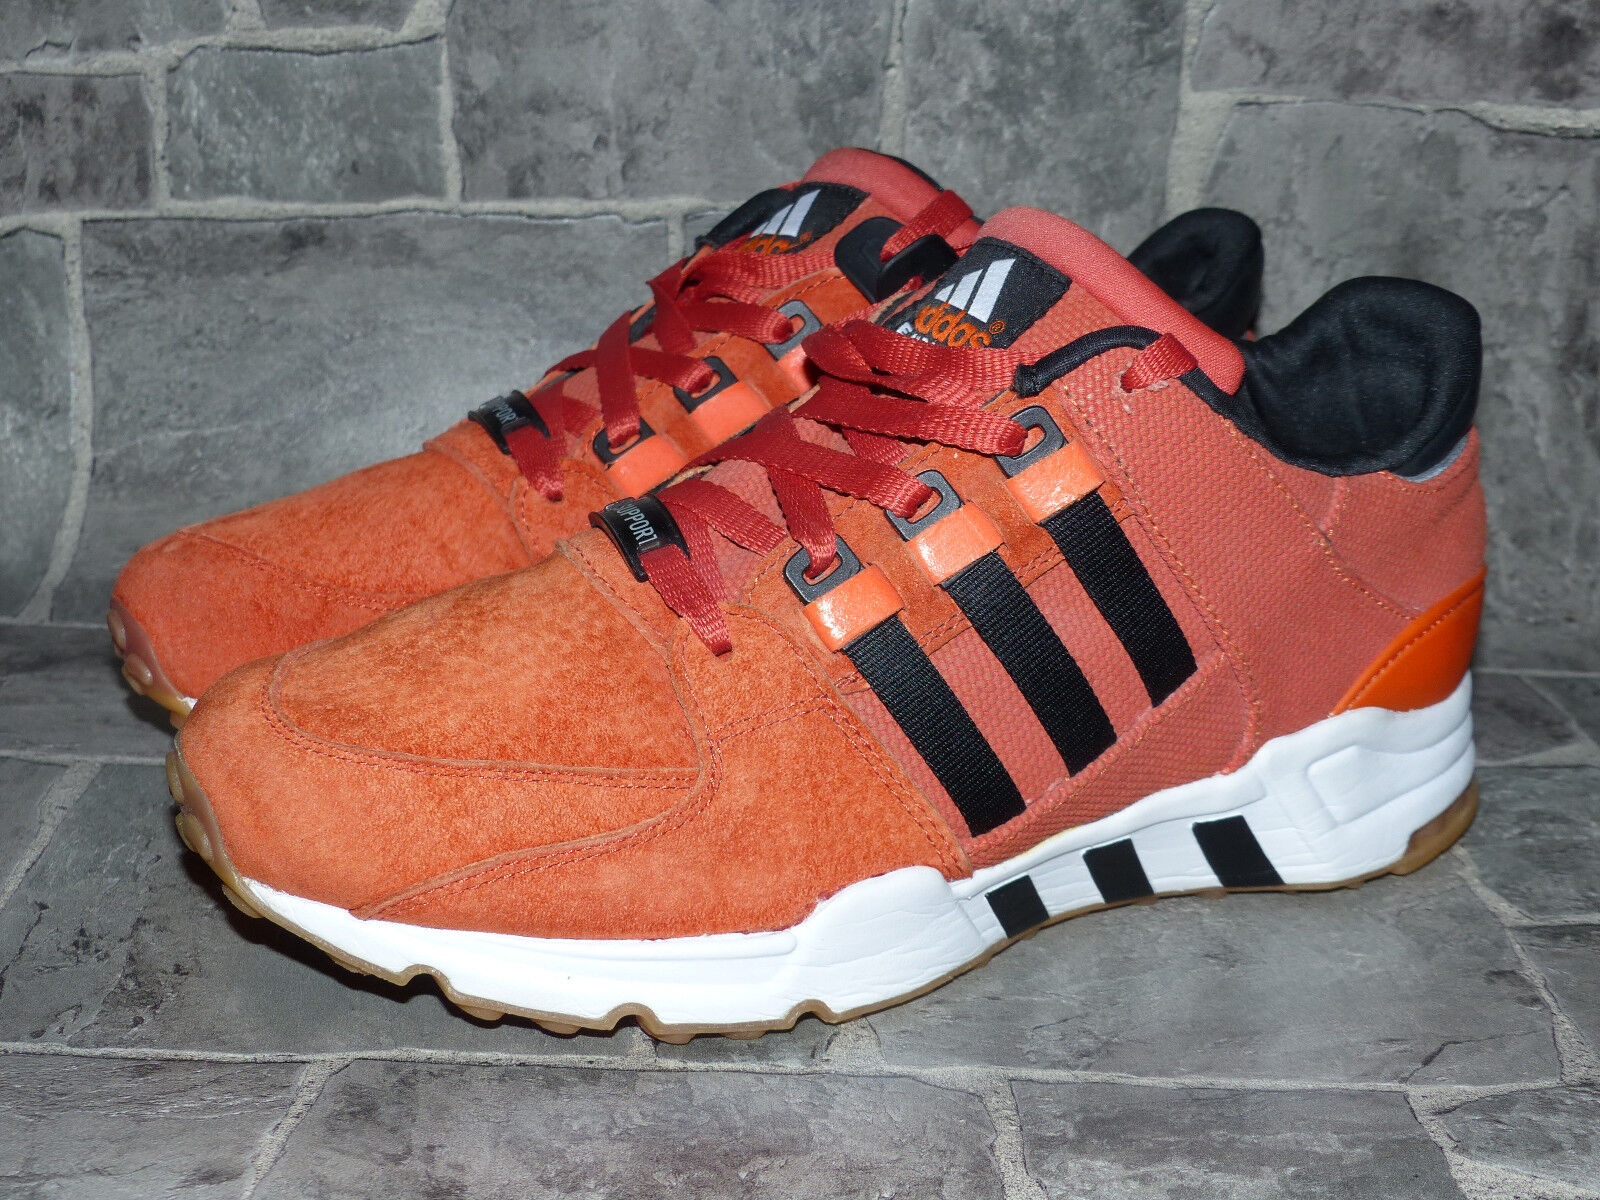 Adidas EQUIPIMENT Running Guidance Torsion Orange Price reduction